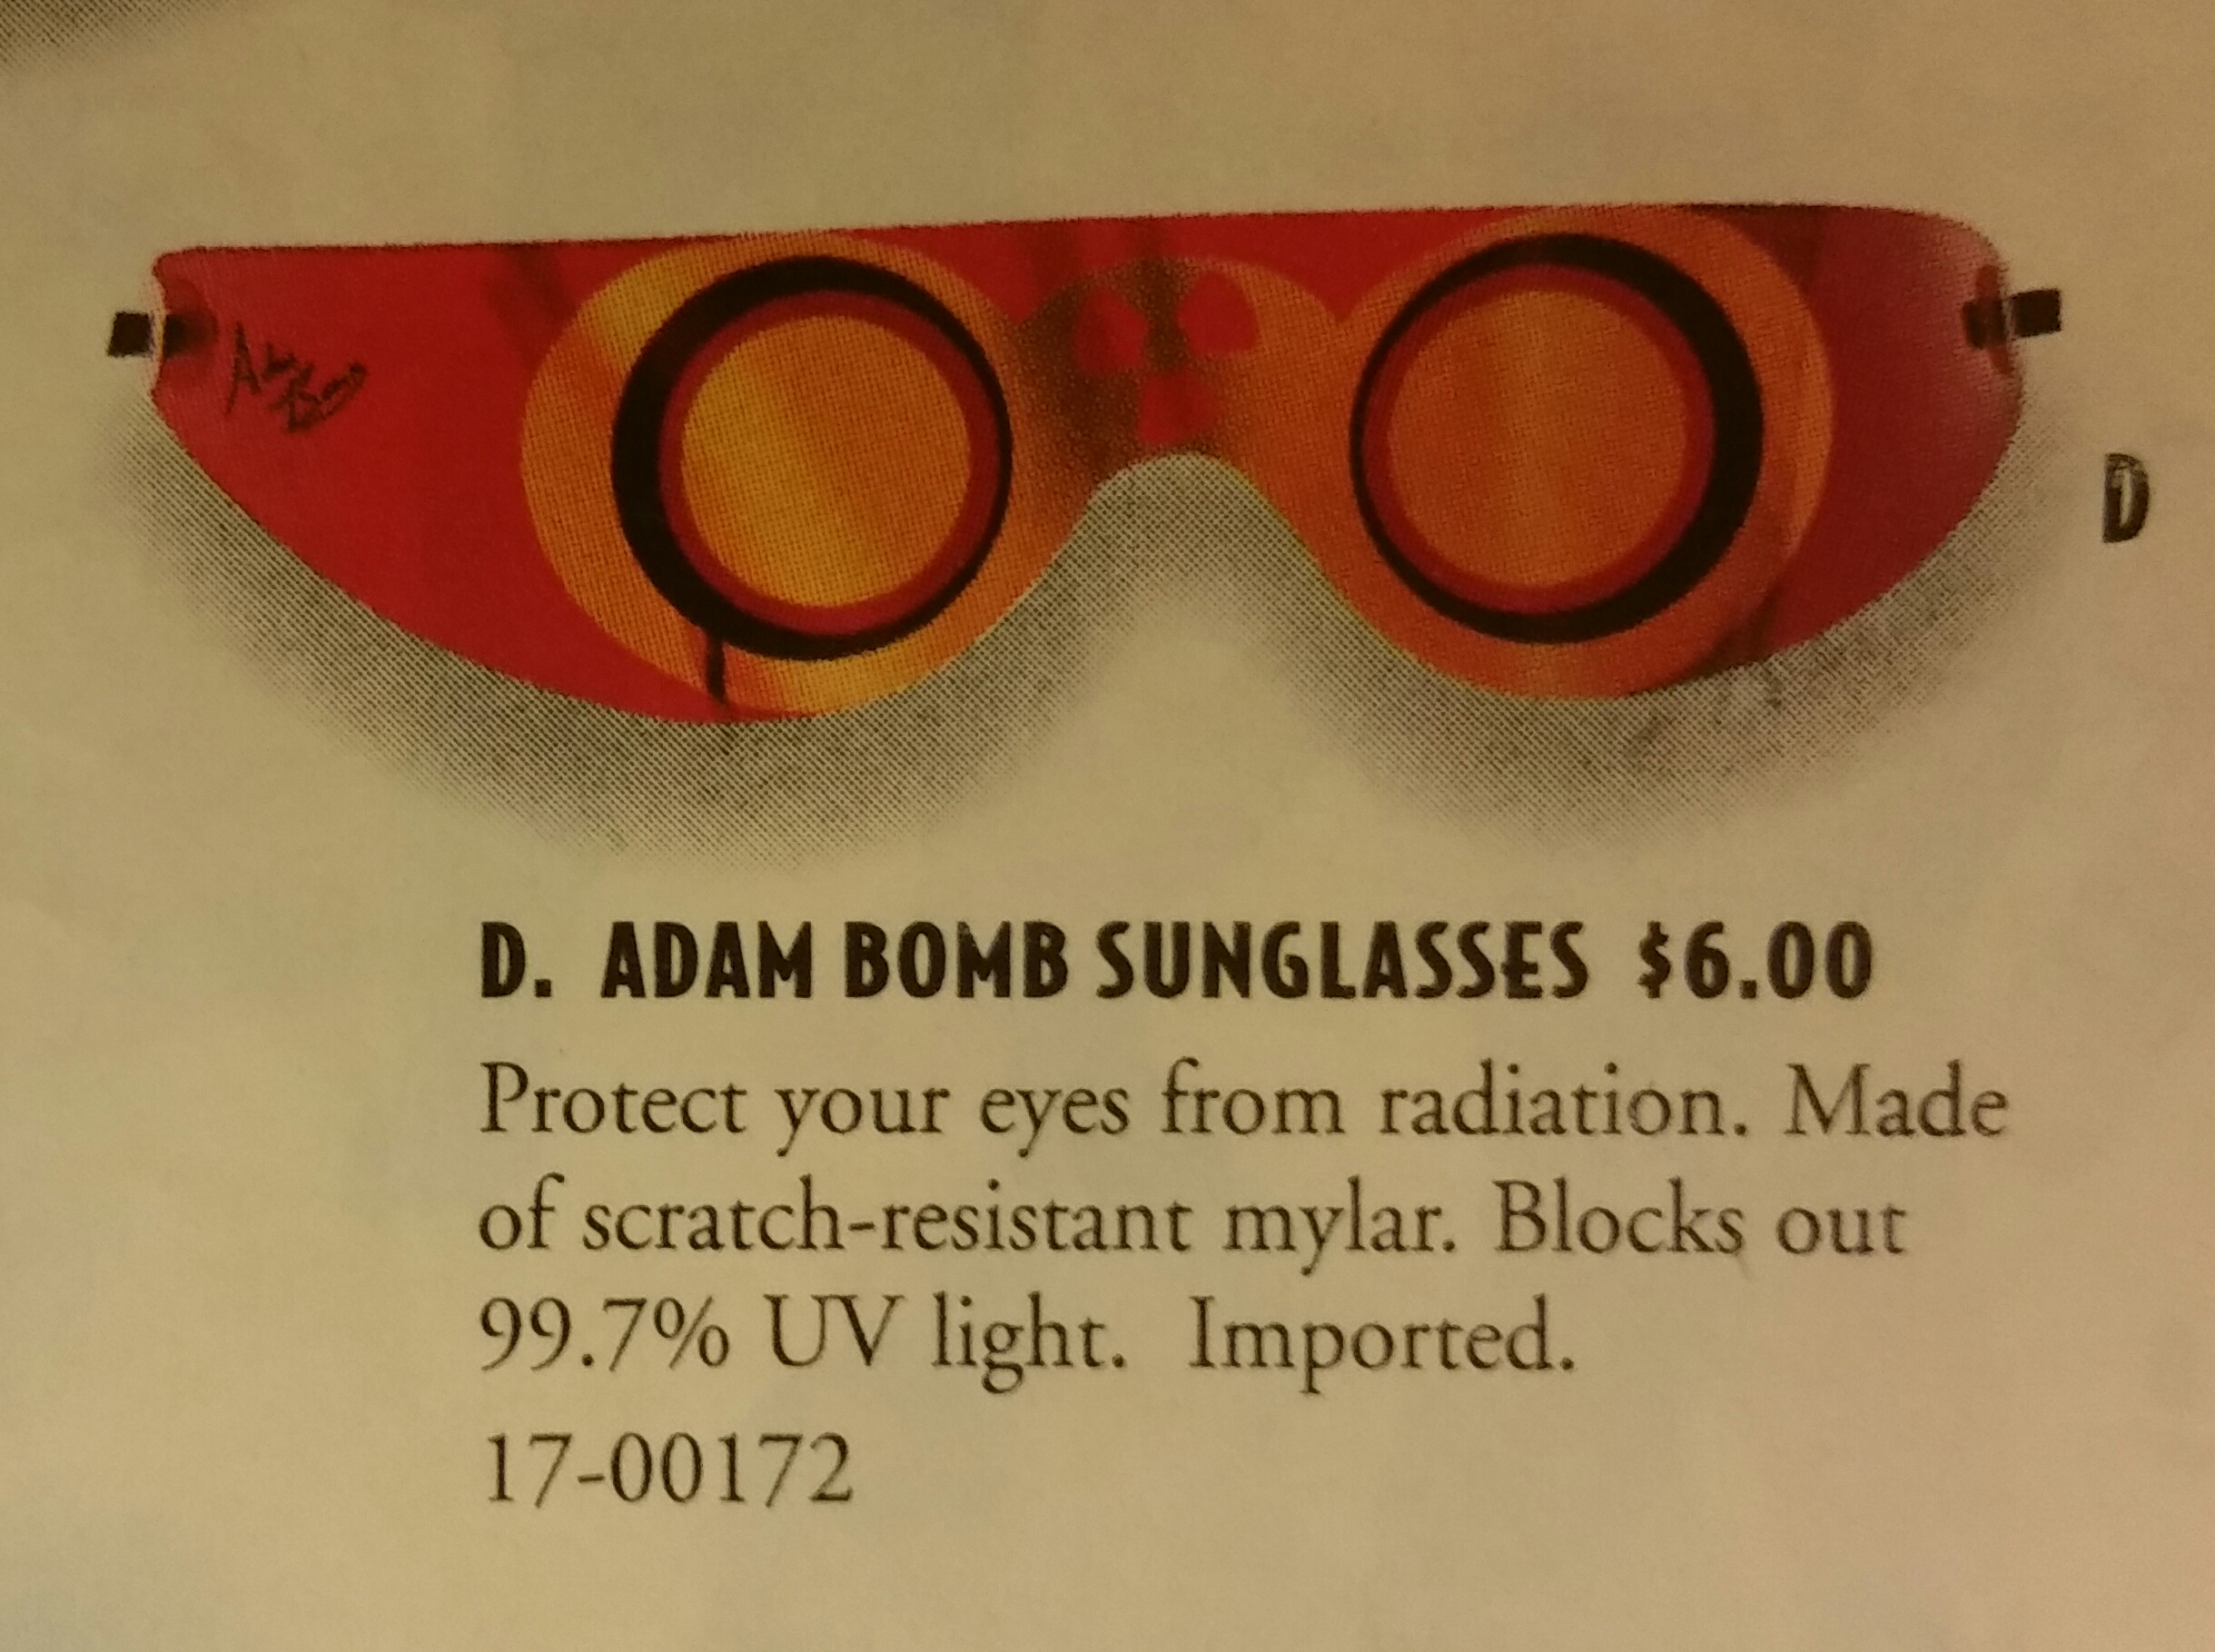 Adam Bomb sunglasses 1